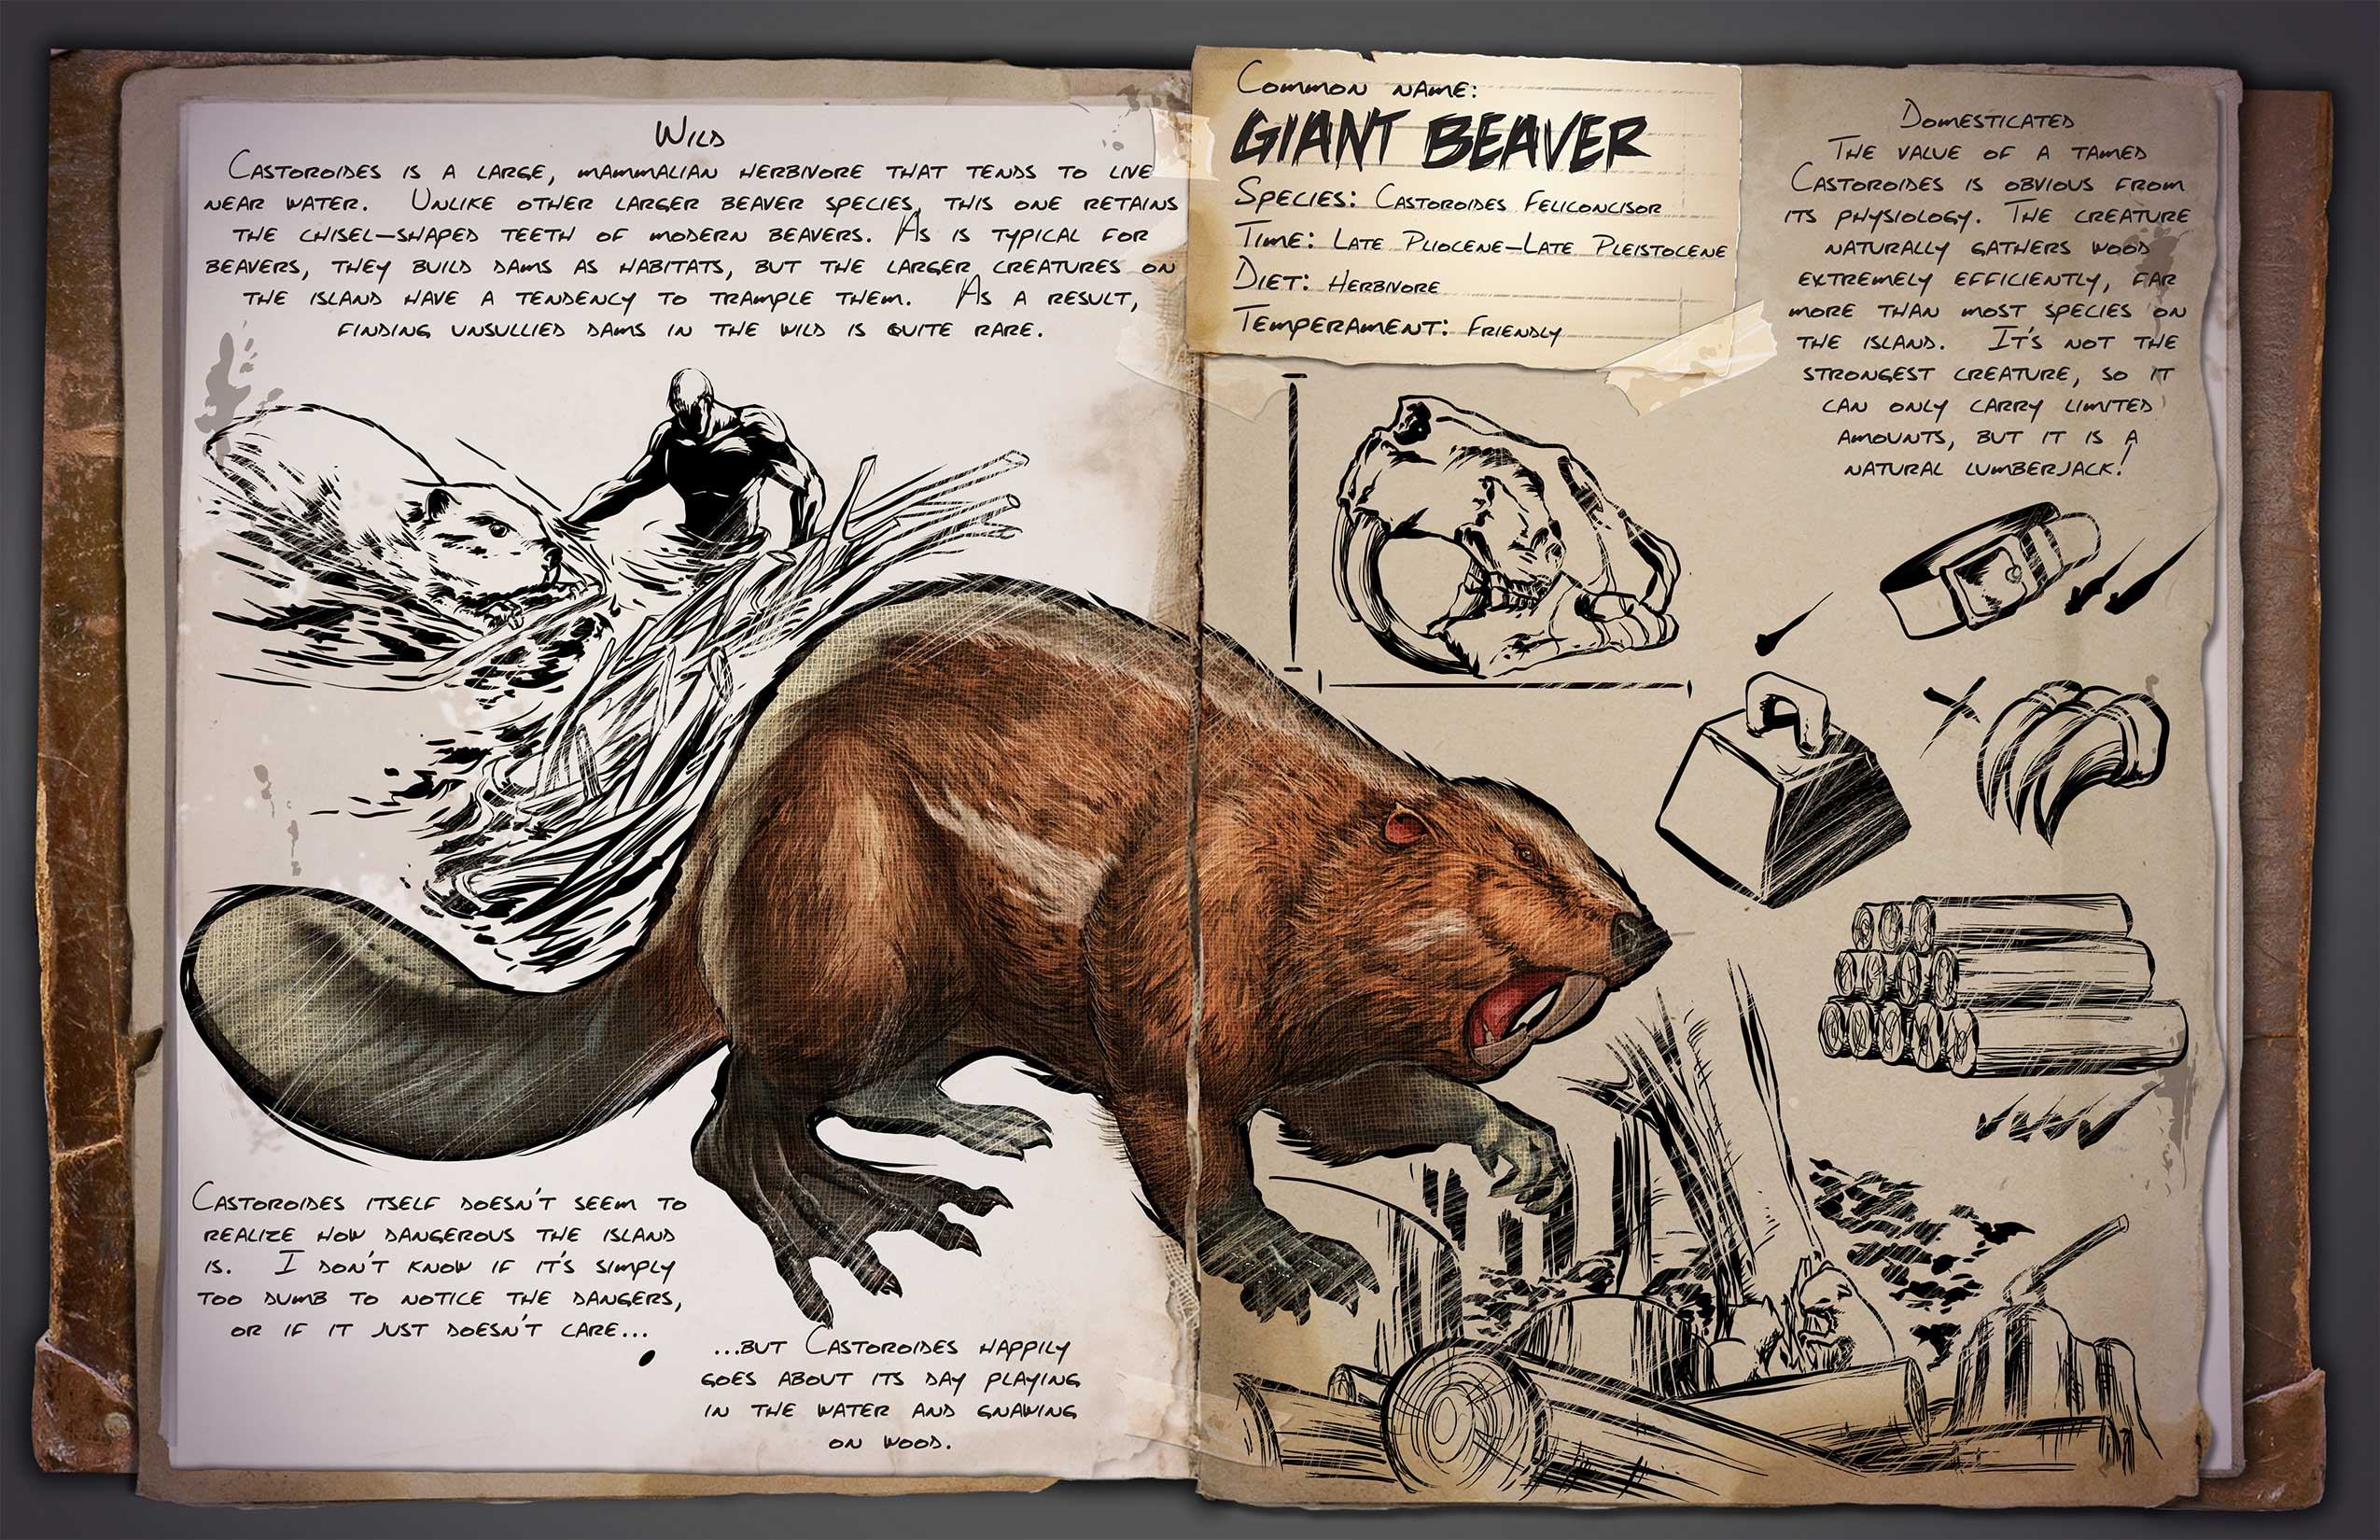 ark_survival_evolved_giant_beaver_5